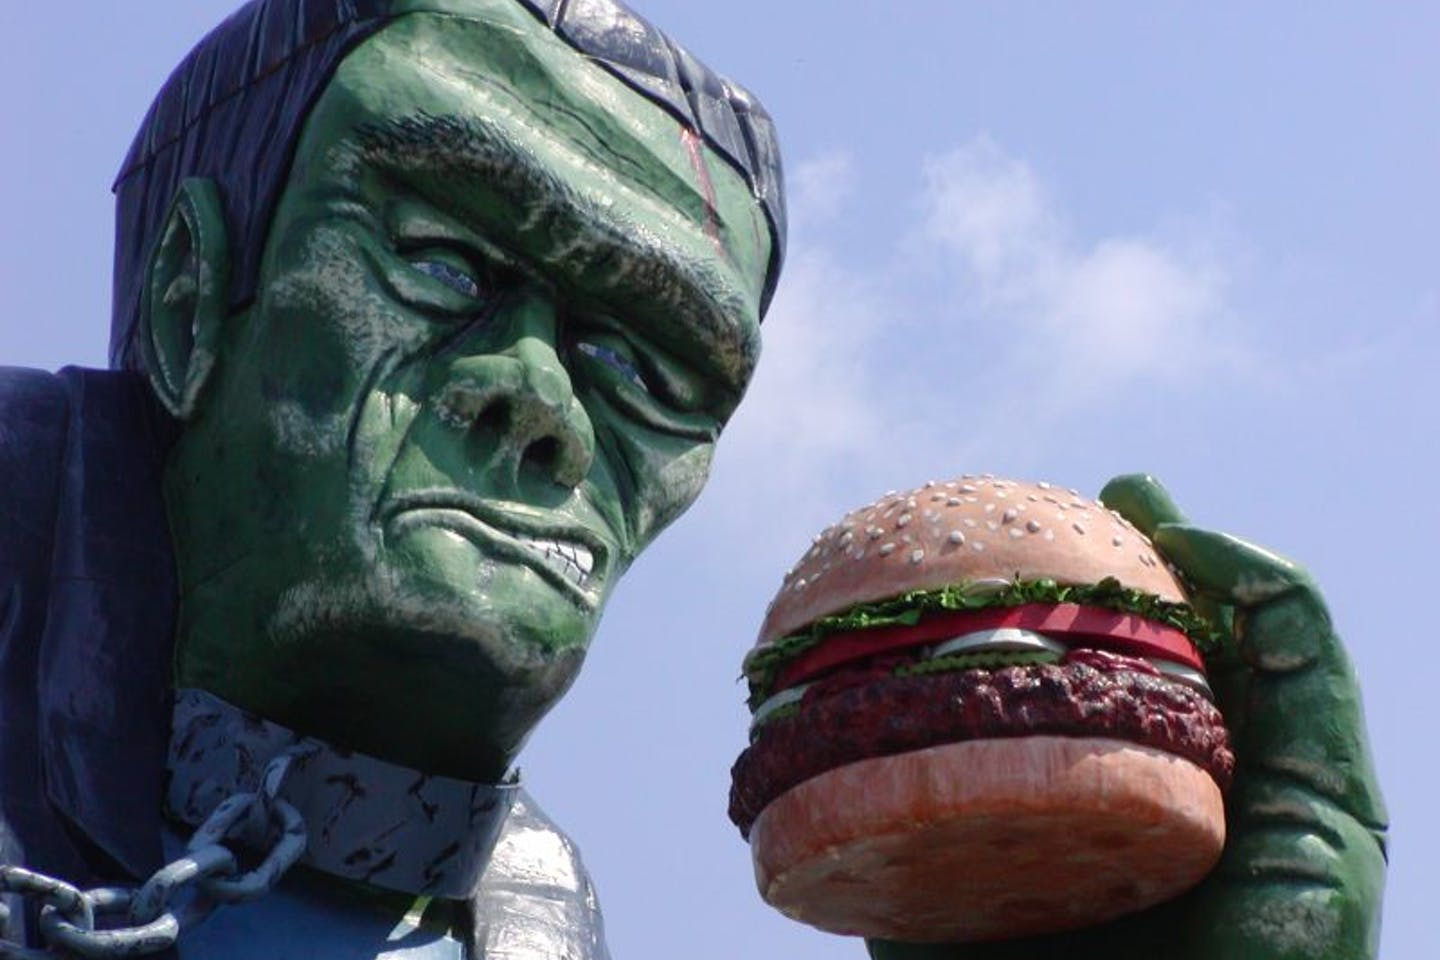 Frankenstein's monster eating a hamburger